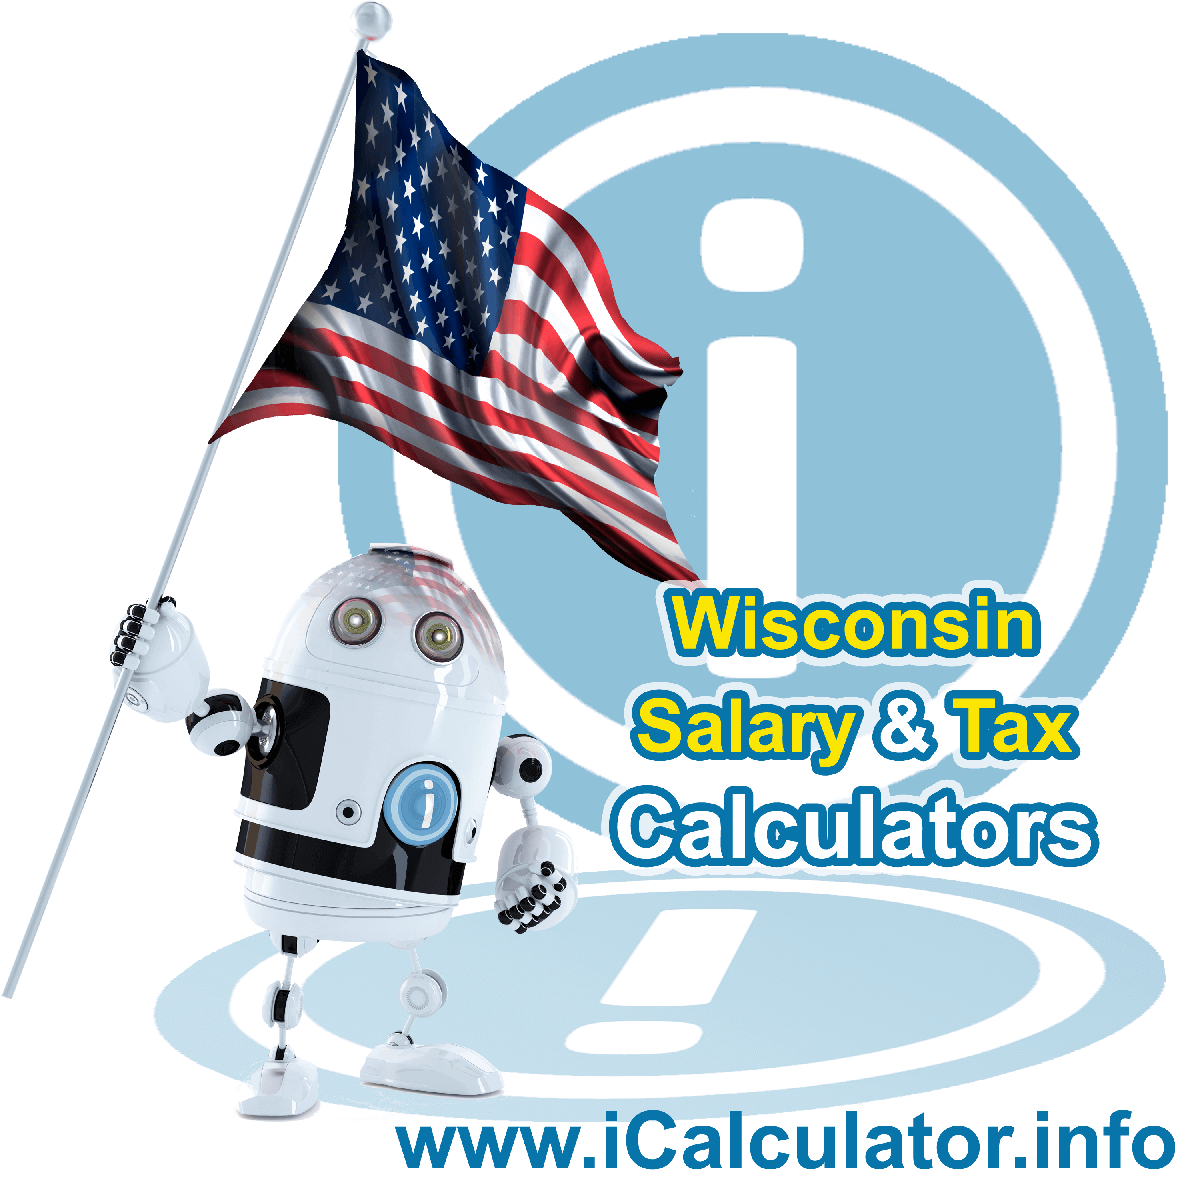 Wisconsin Salary Calculator 2021 | iCalculator | The Wisconsin Salary Calculator allows you to quickly calculate your salary after tax including Wisconsin State Tax, Federal State Tax, Medicare Deductions, Social Security, Capital Gains and other income tax and salary deductions complete with supporting Wisconsin state tax tables